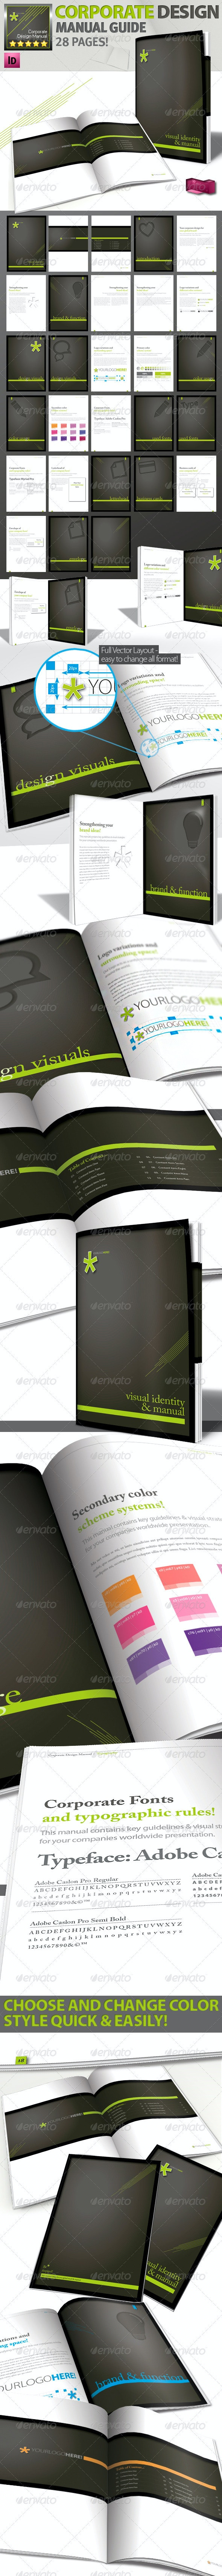 Corporate Identity Manuals and Guides Template A4 - Corporate Brochures